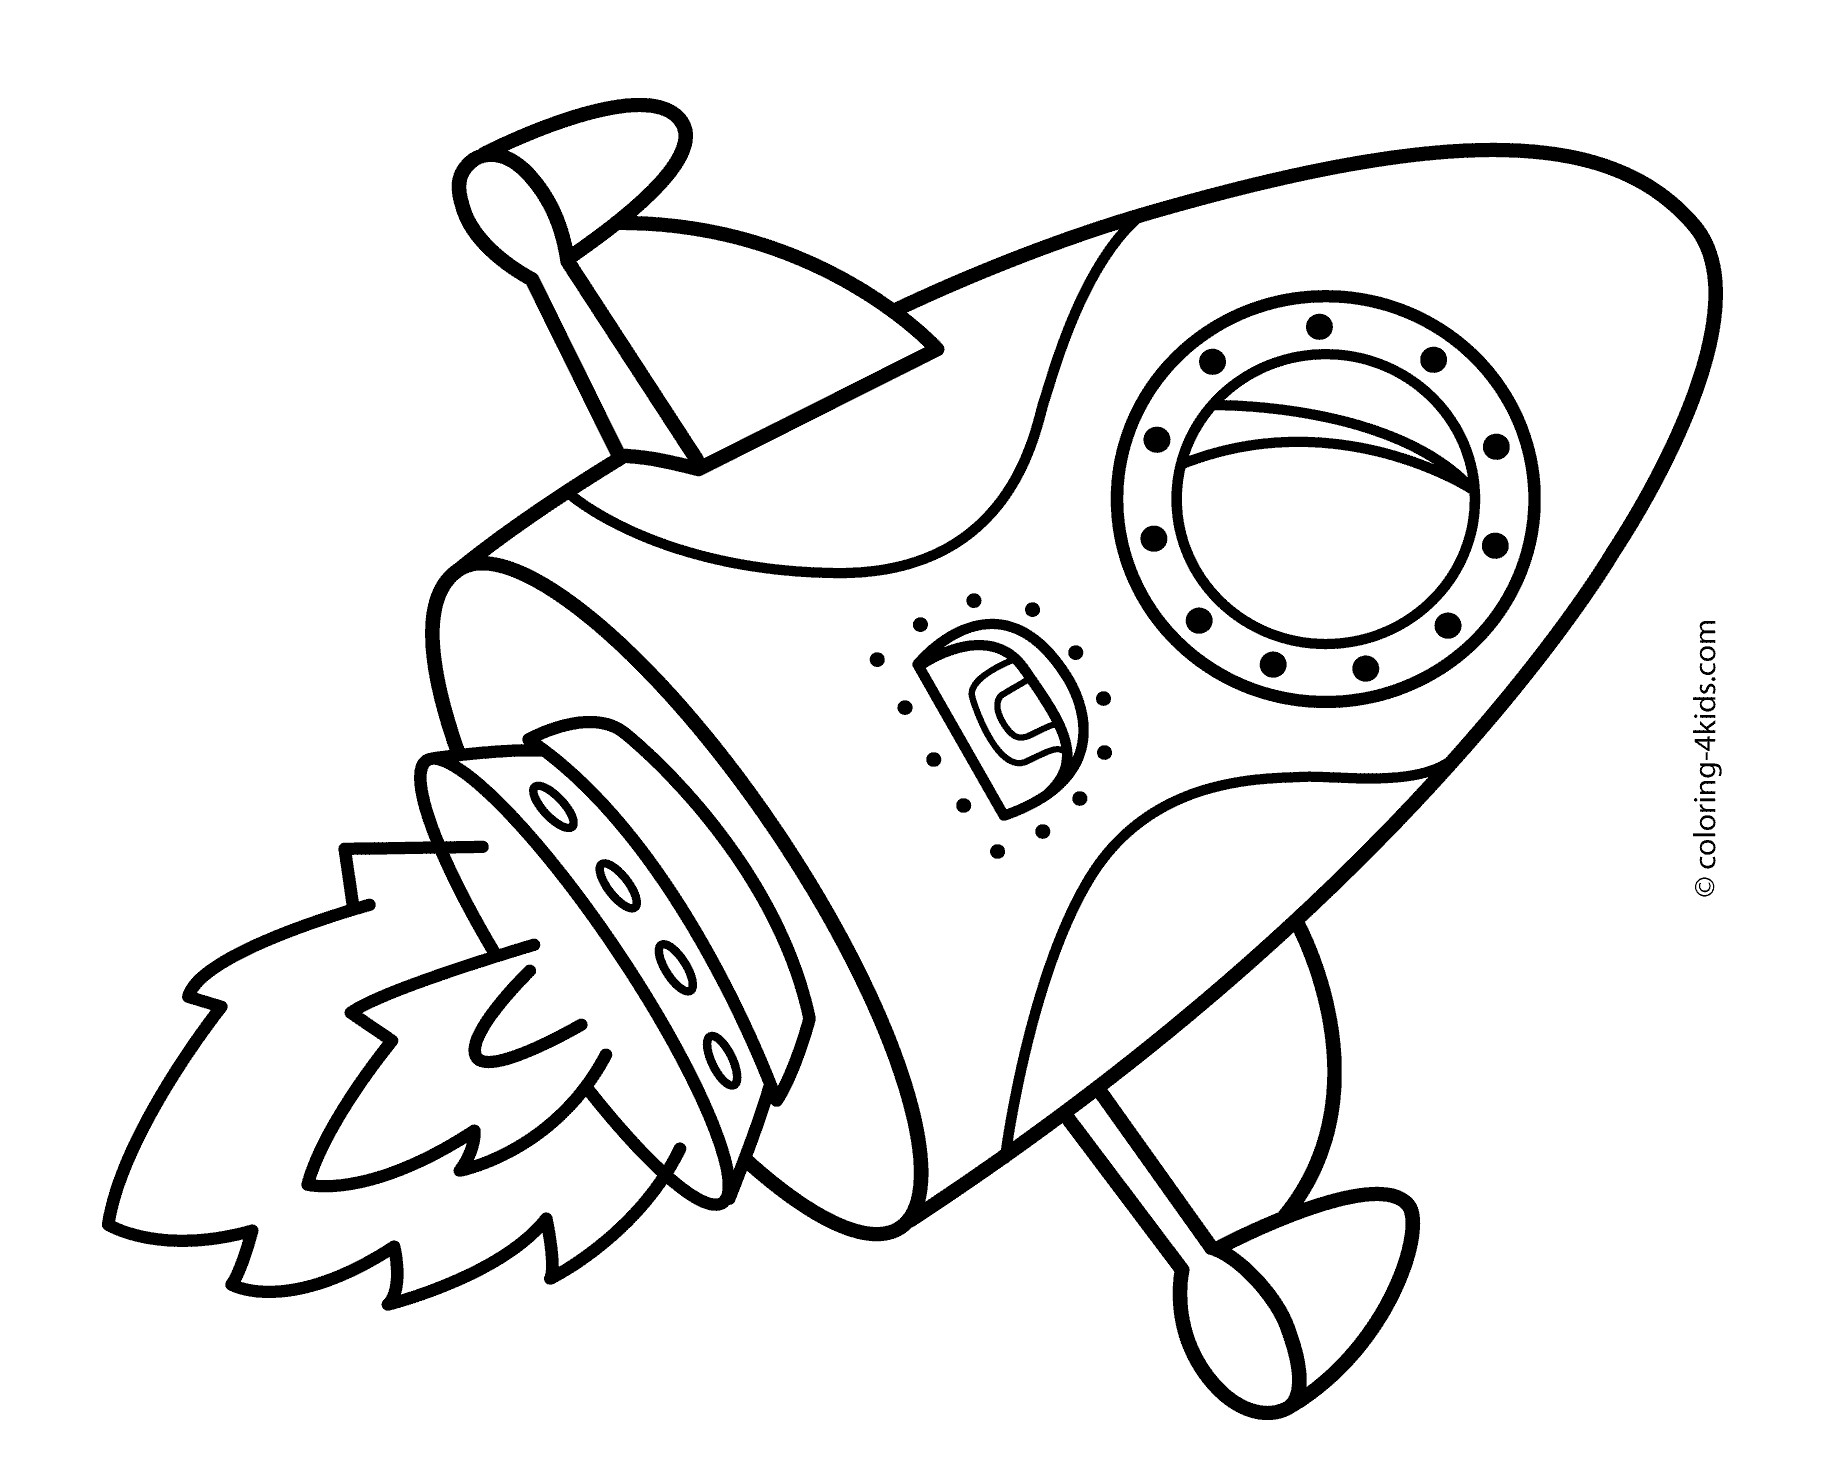 rocket ship coloring page - rocket coloring pages